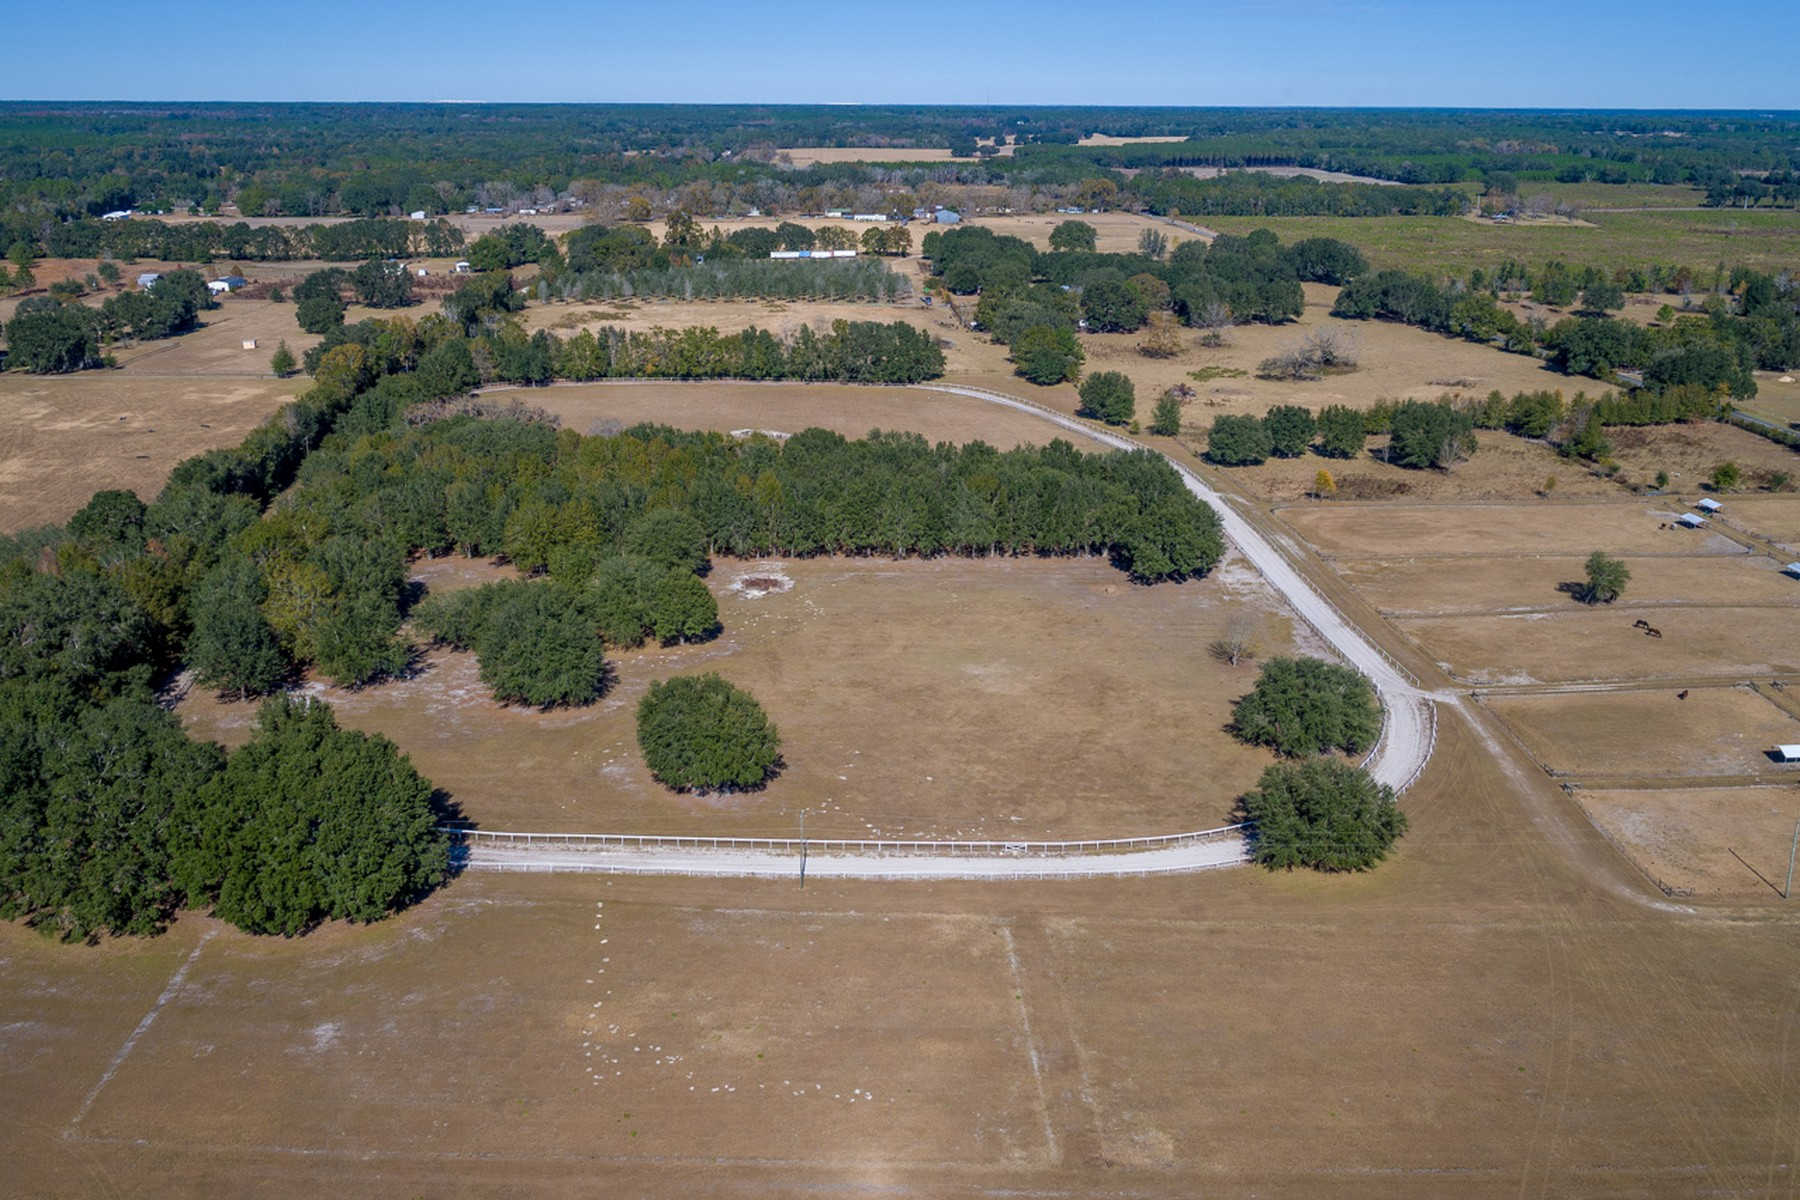 Fattoria / ranch / campagna per Vendita alle ore Turnkey Equestrian Ranch 16629 27th Road, Lake City, Florida, 32024 Stati Uniti